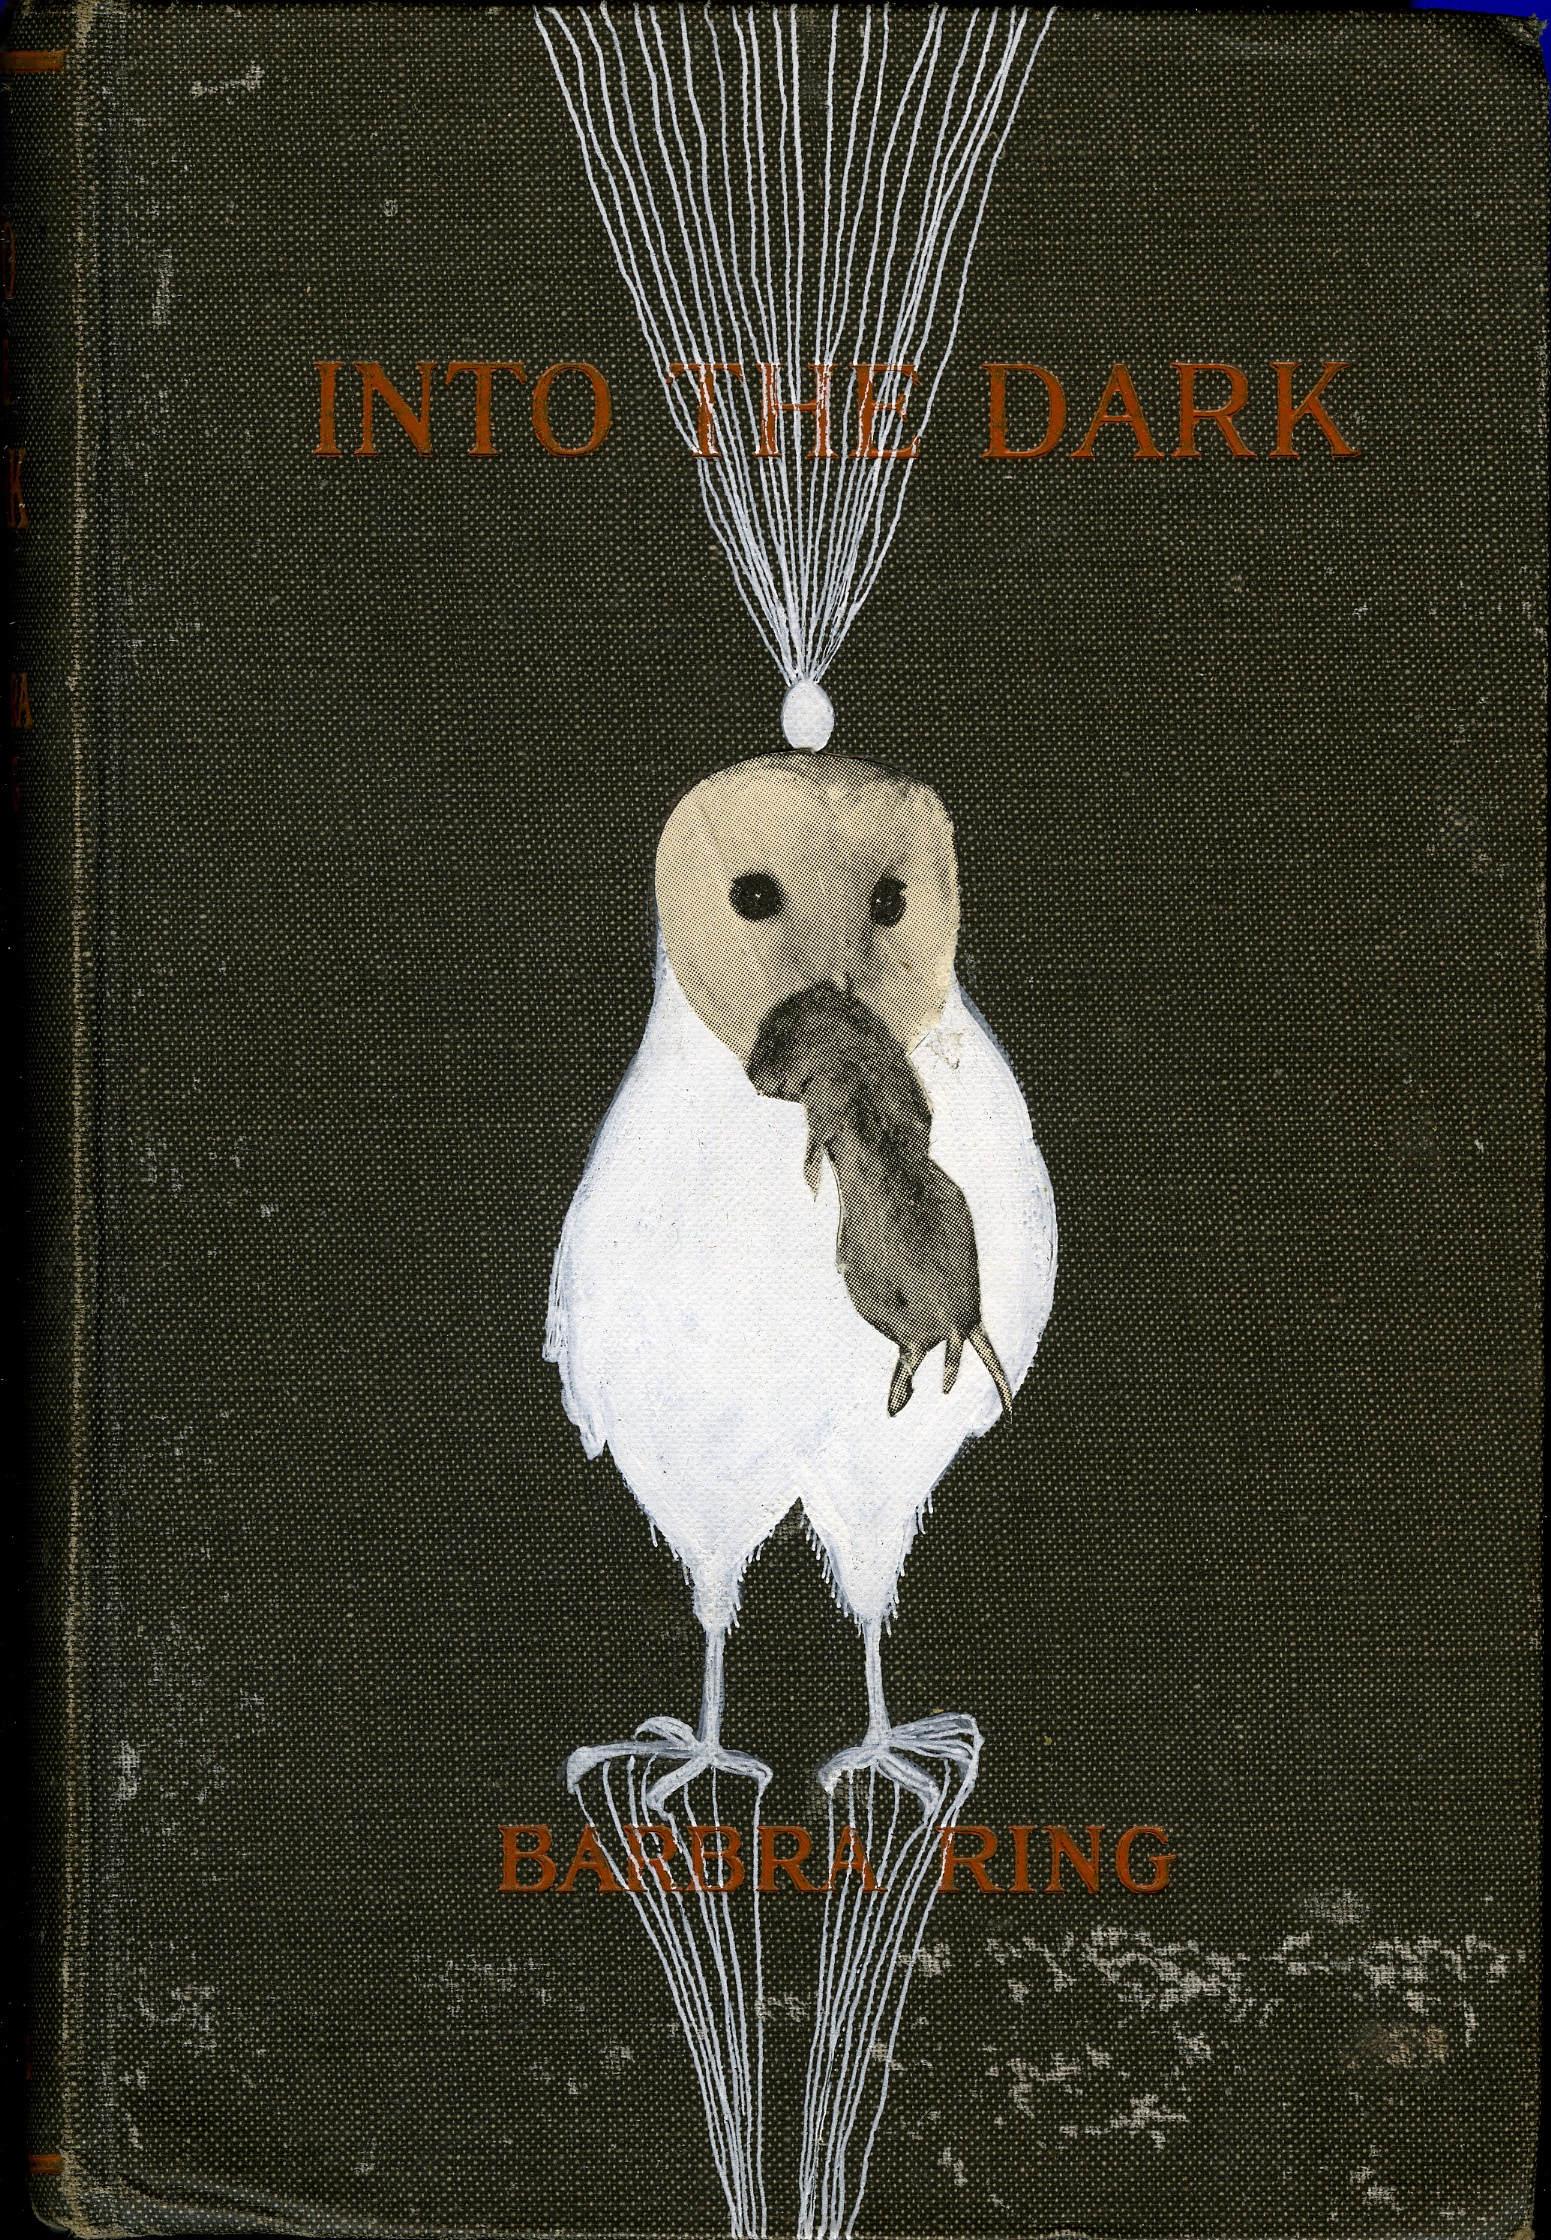 Into the dark, 2009.